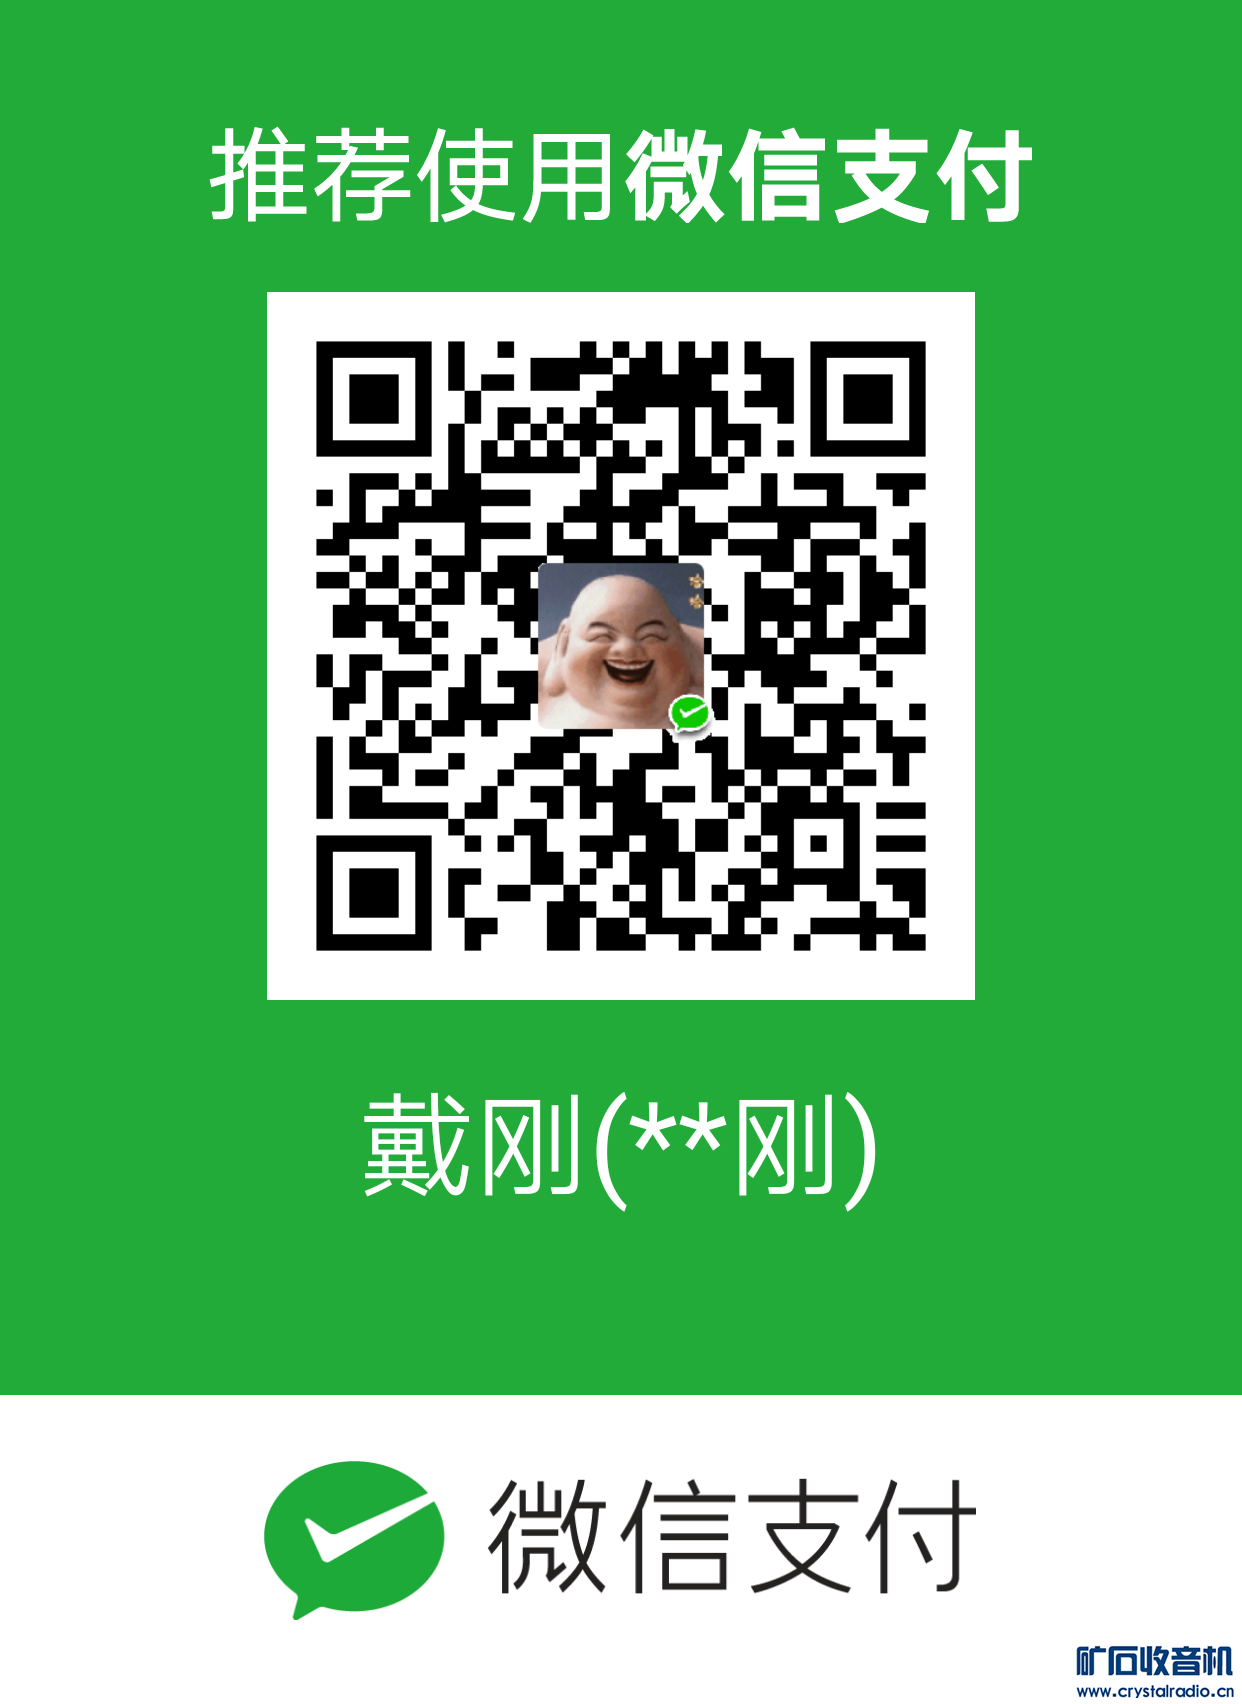 mm_facetoface_collect_qrcode_1542581547018.png